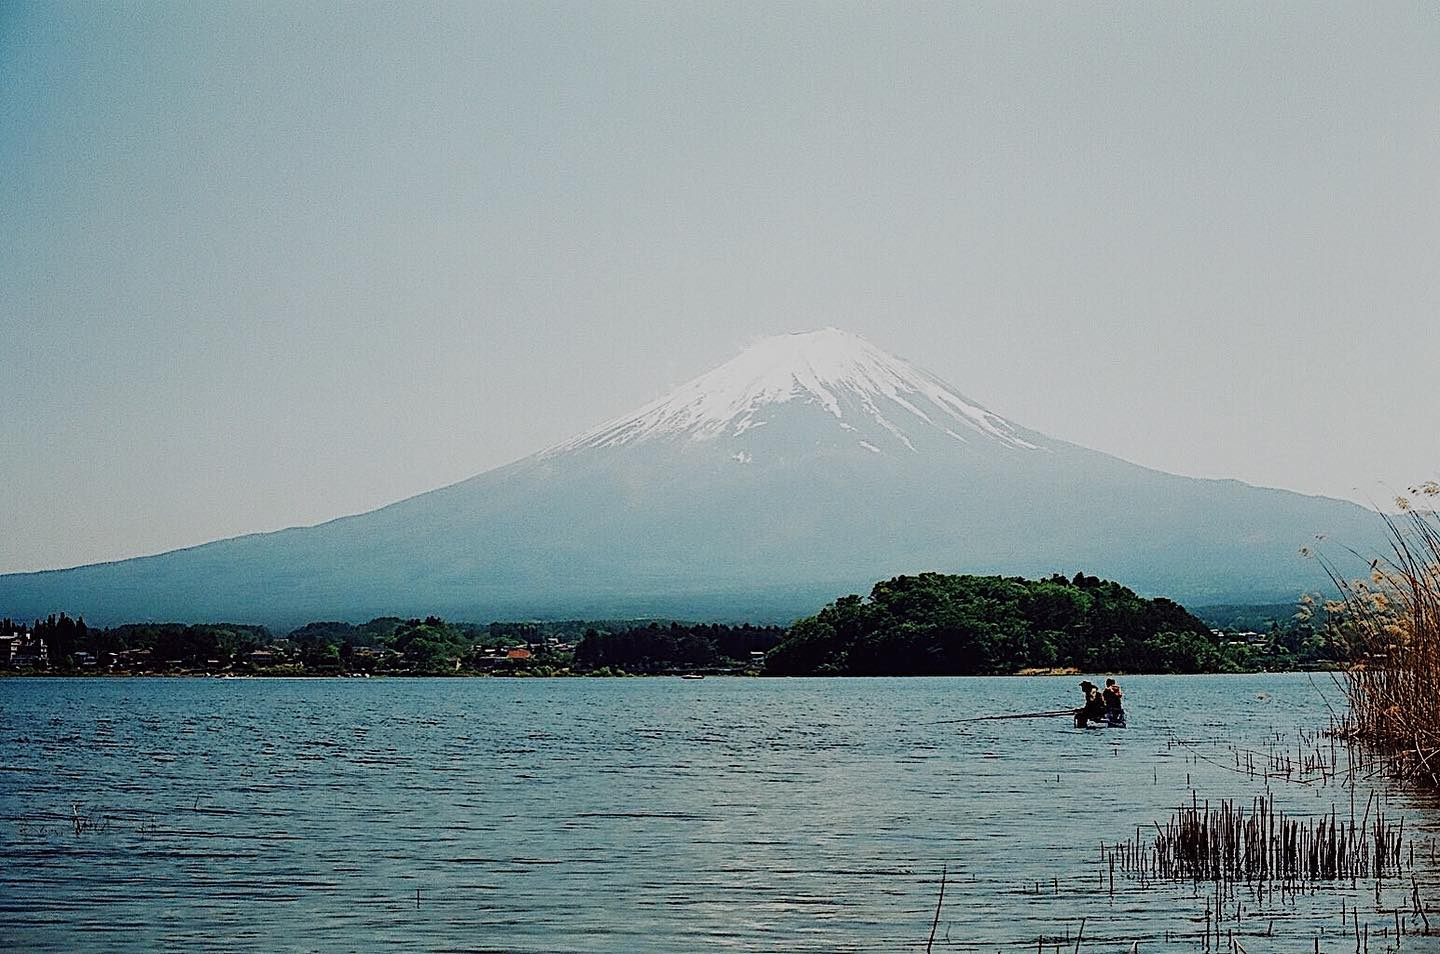 """_ Here's this week's update of from AOI Global at Lake Kawaguchi, Yamanashi Pref.  There are several lakes around Mt. Fuji and they are often known as """"Fujigoko / Fuji Five Lakes"""". Lake Kawaguchi is also one of them.  #aoiglobal #shootinglocation #filmmakinglife"""